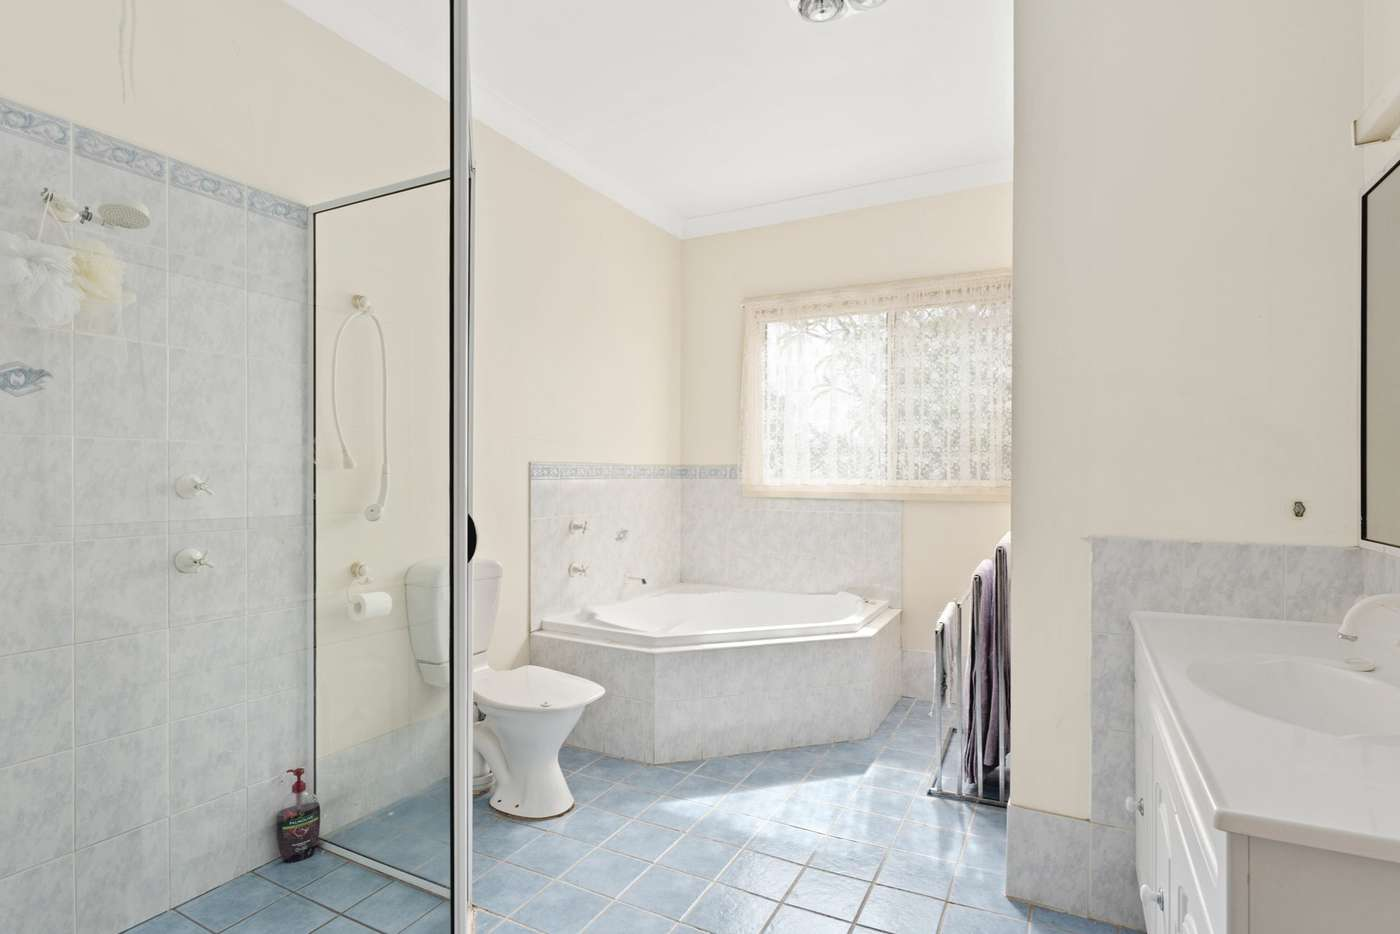 Seventh view of Homely house listing, 53 Bungay Road, Wingham NSW 2429